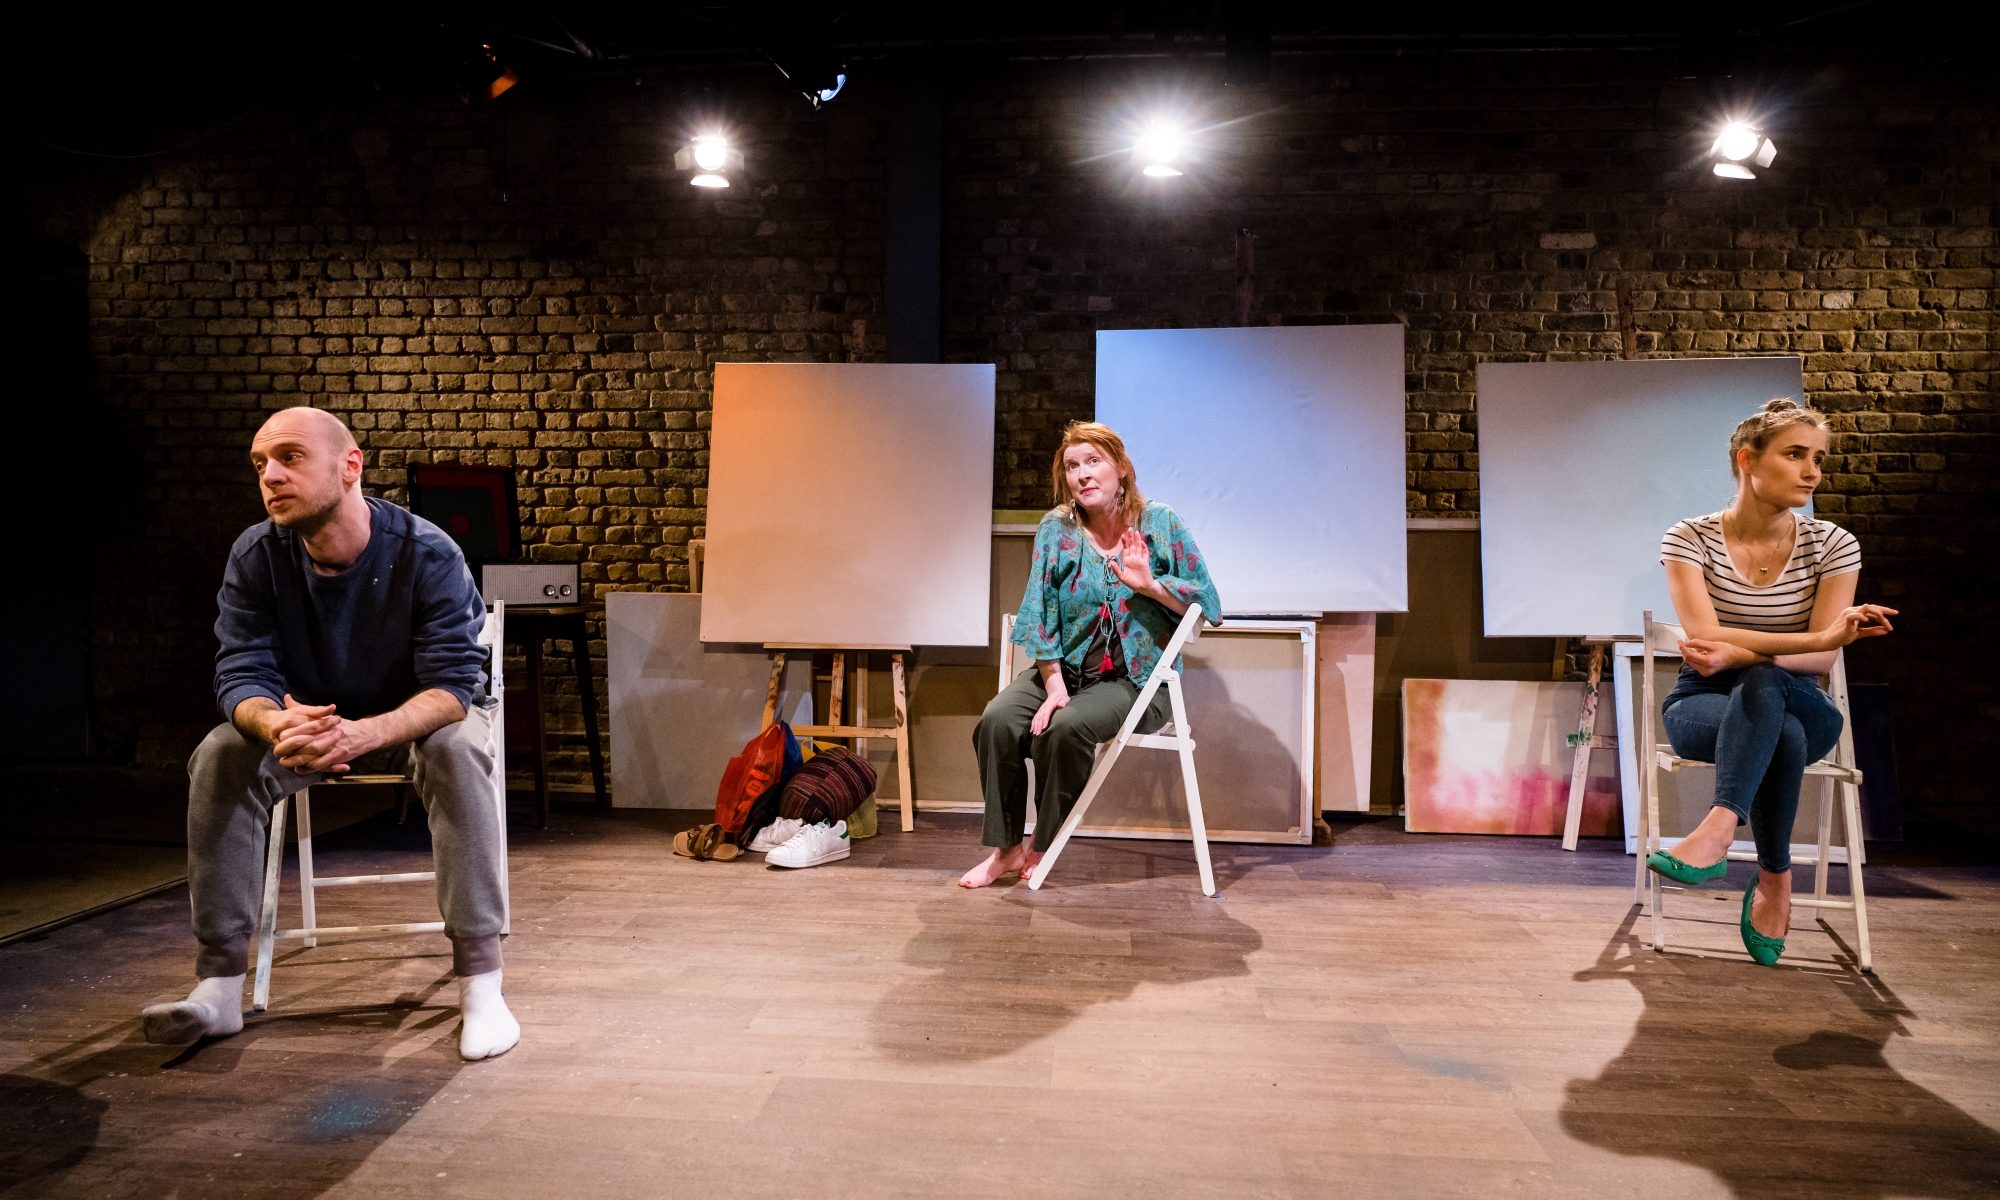 Three people (from left: a man, woman and younger woman) sit on white chairs in an arts studio. At the back of the room, mounted on easels, are three blank canvases.